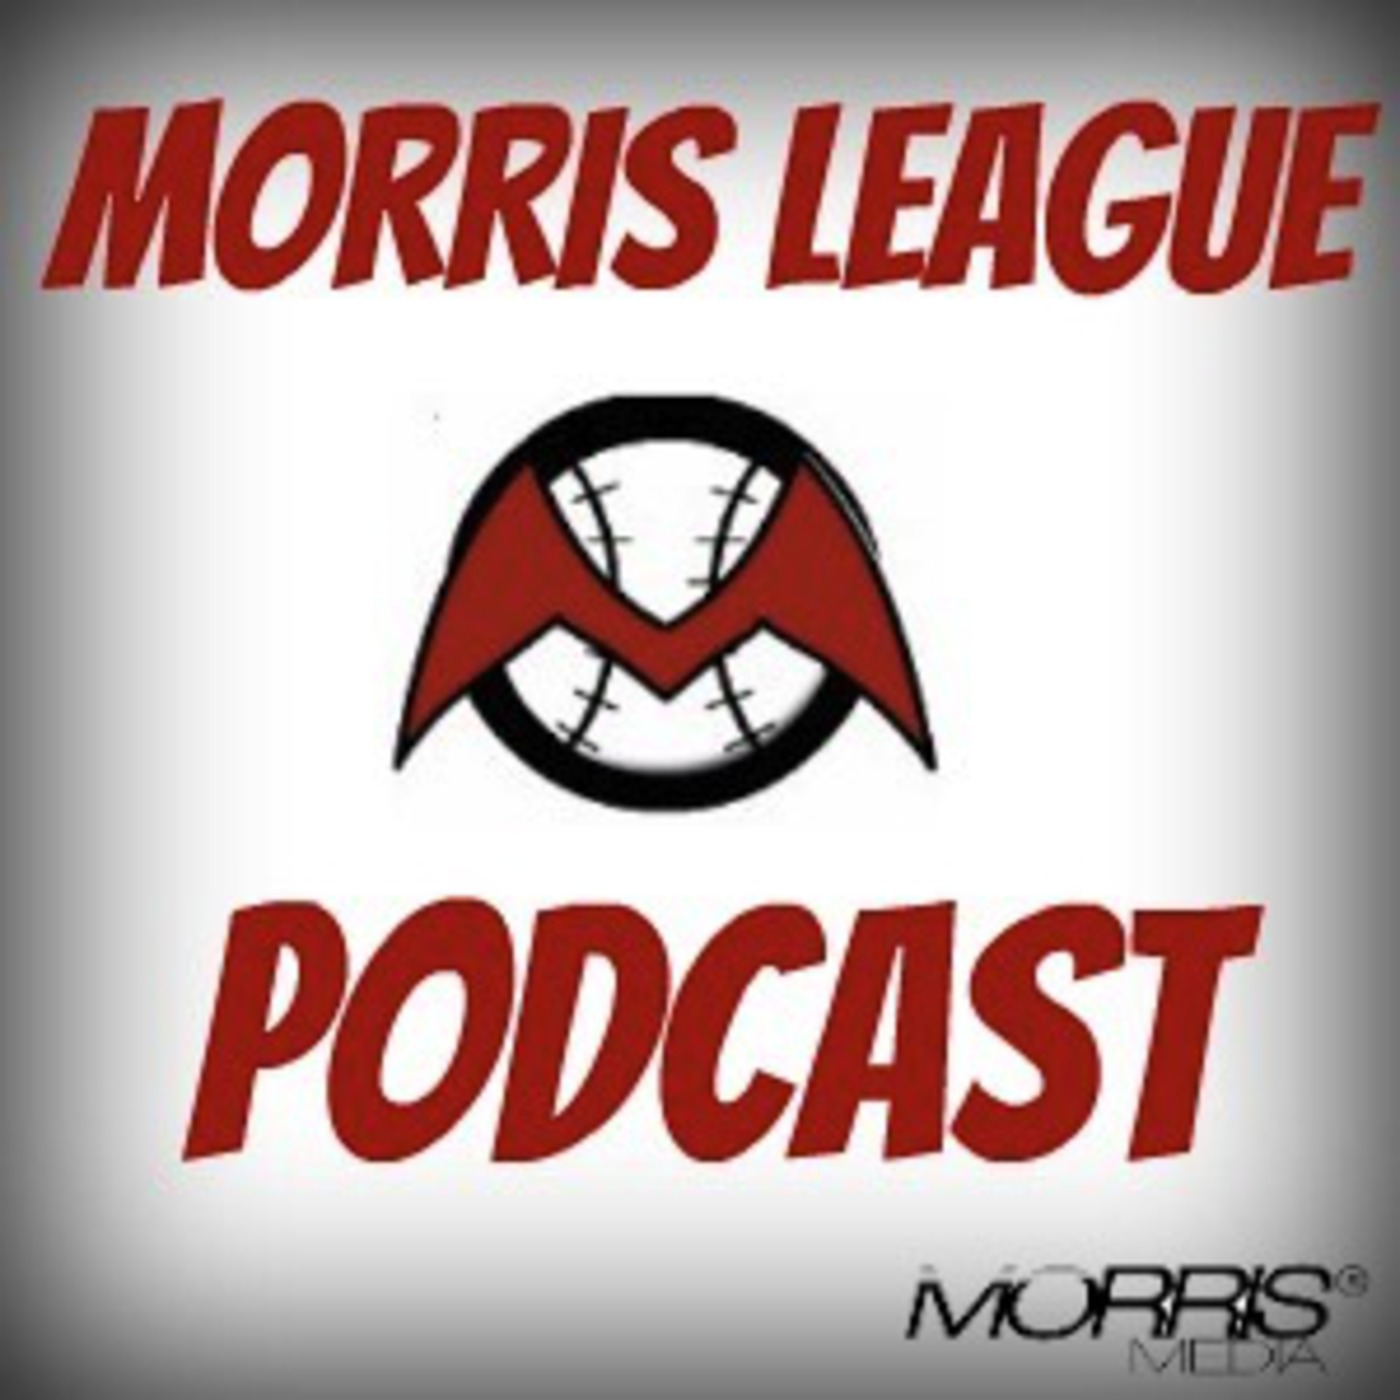 MORRIS LEAGUE'S PODCAST